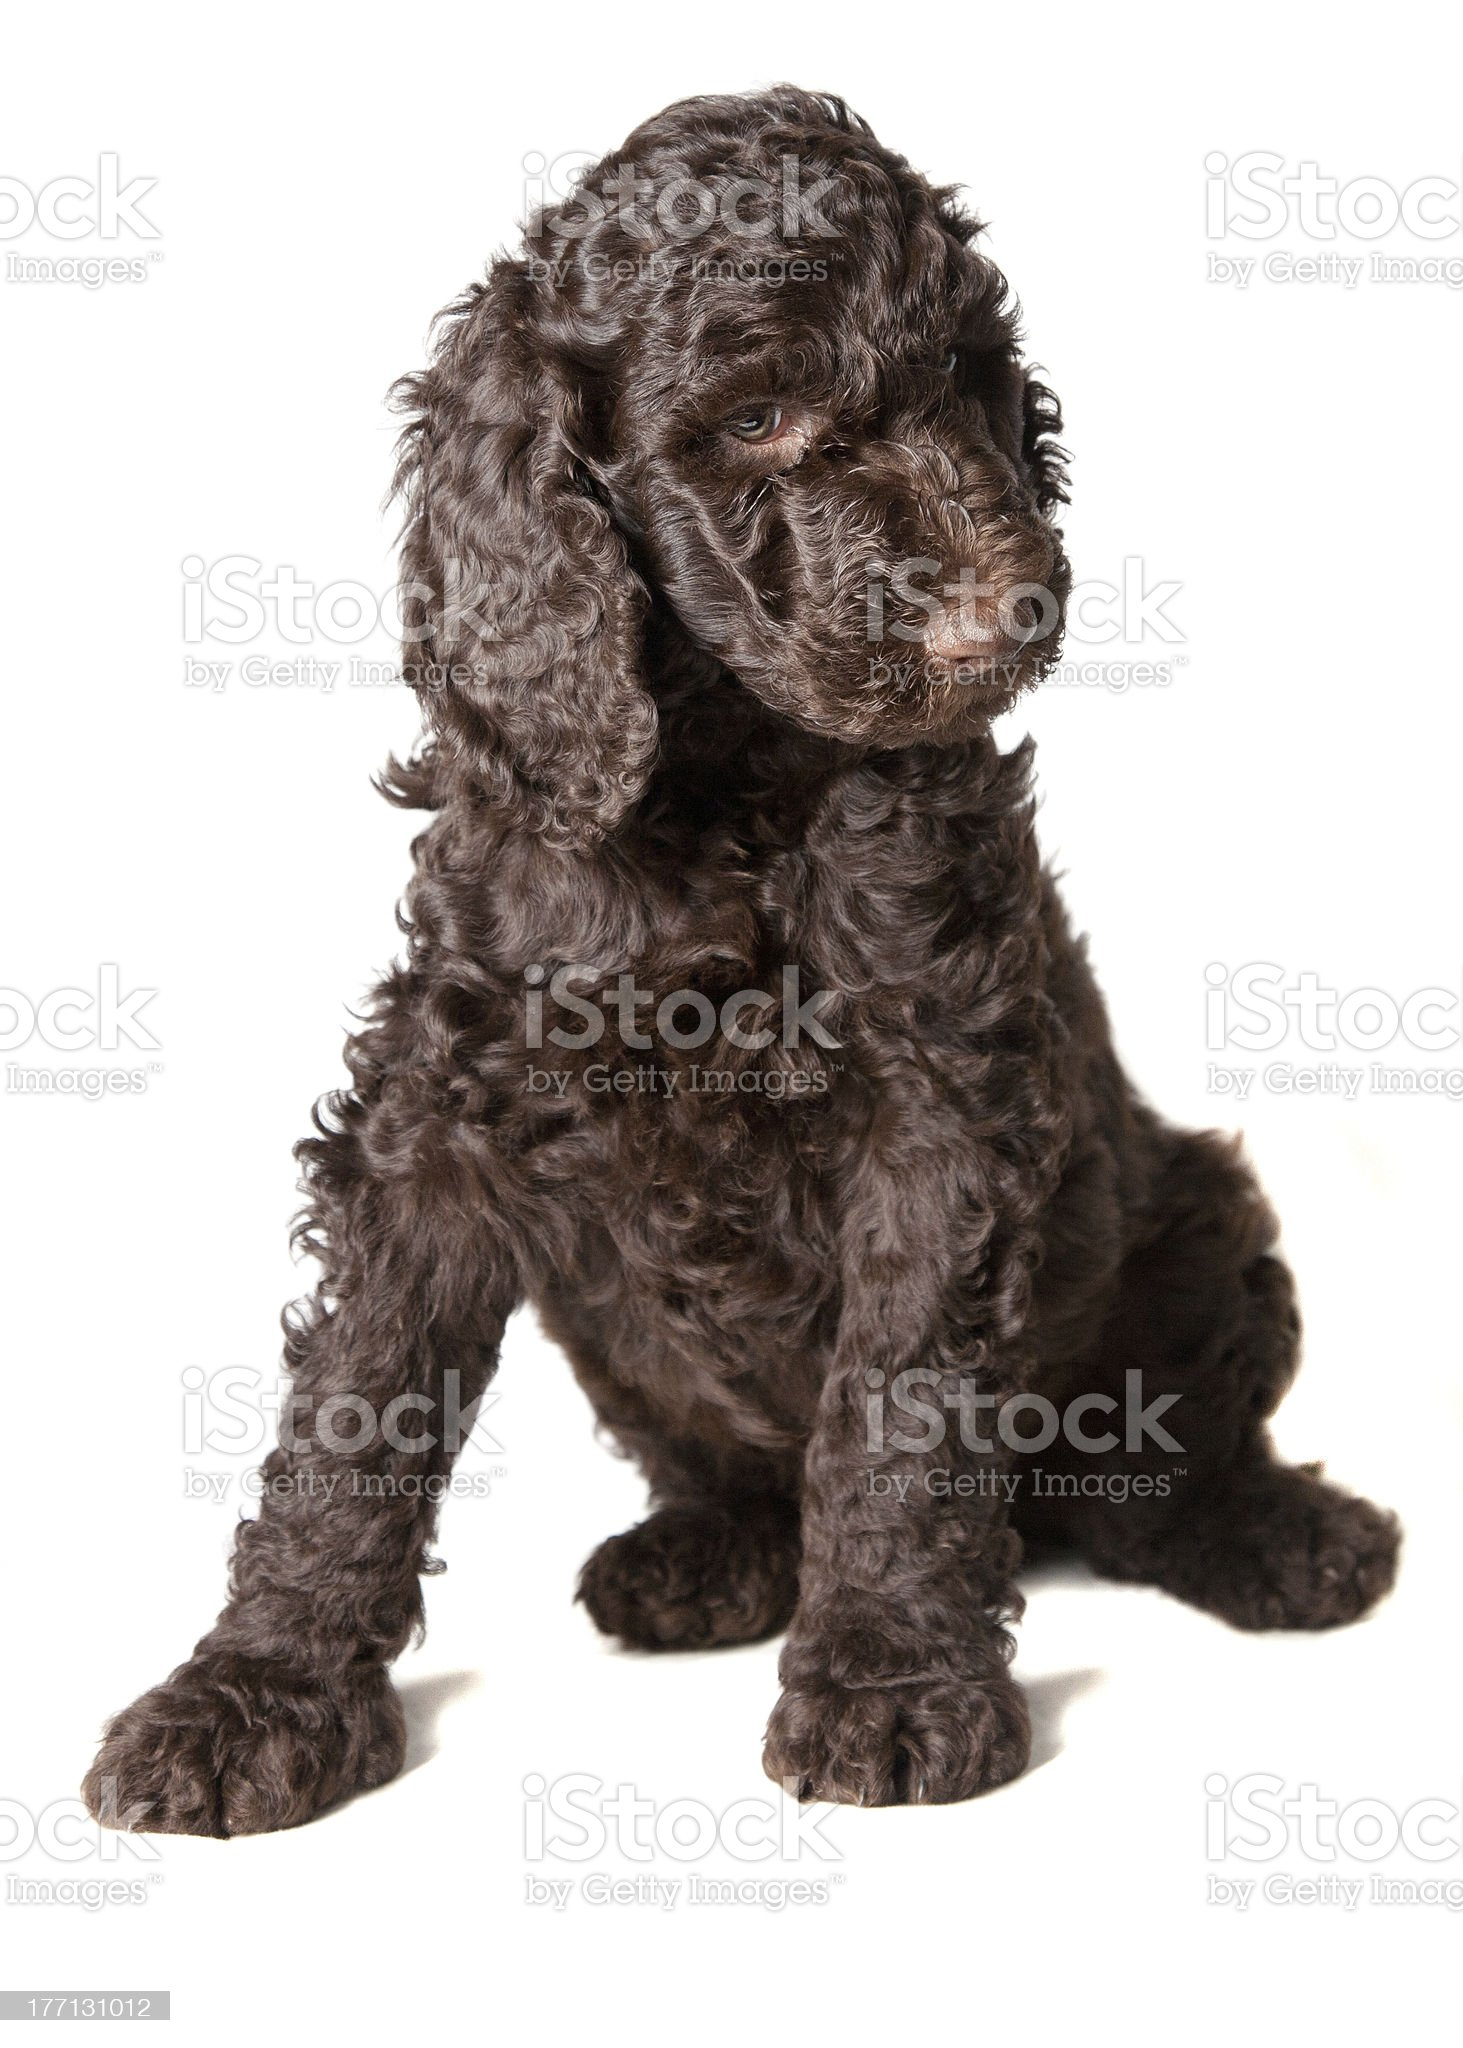 Brown Poodle Puppy royalty-free stock photo